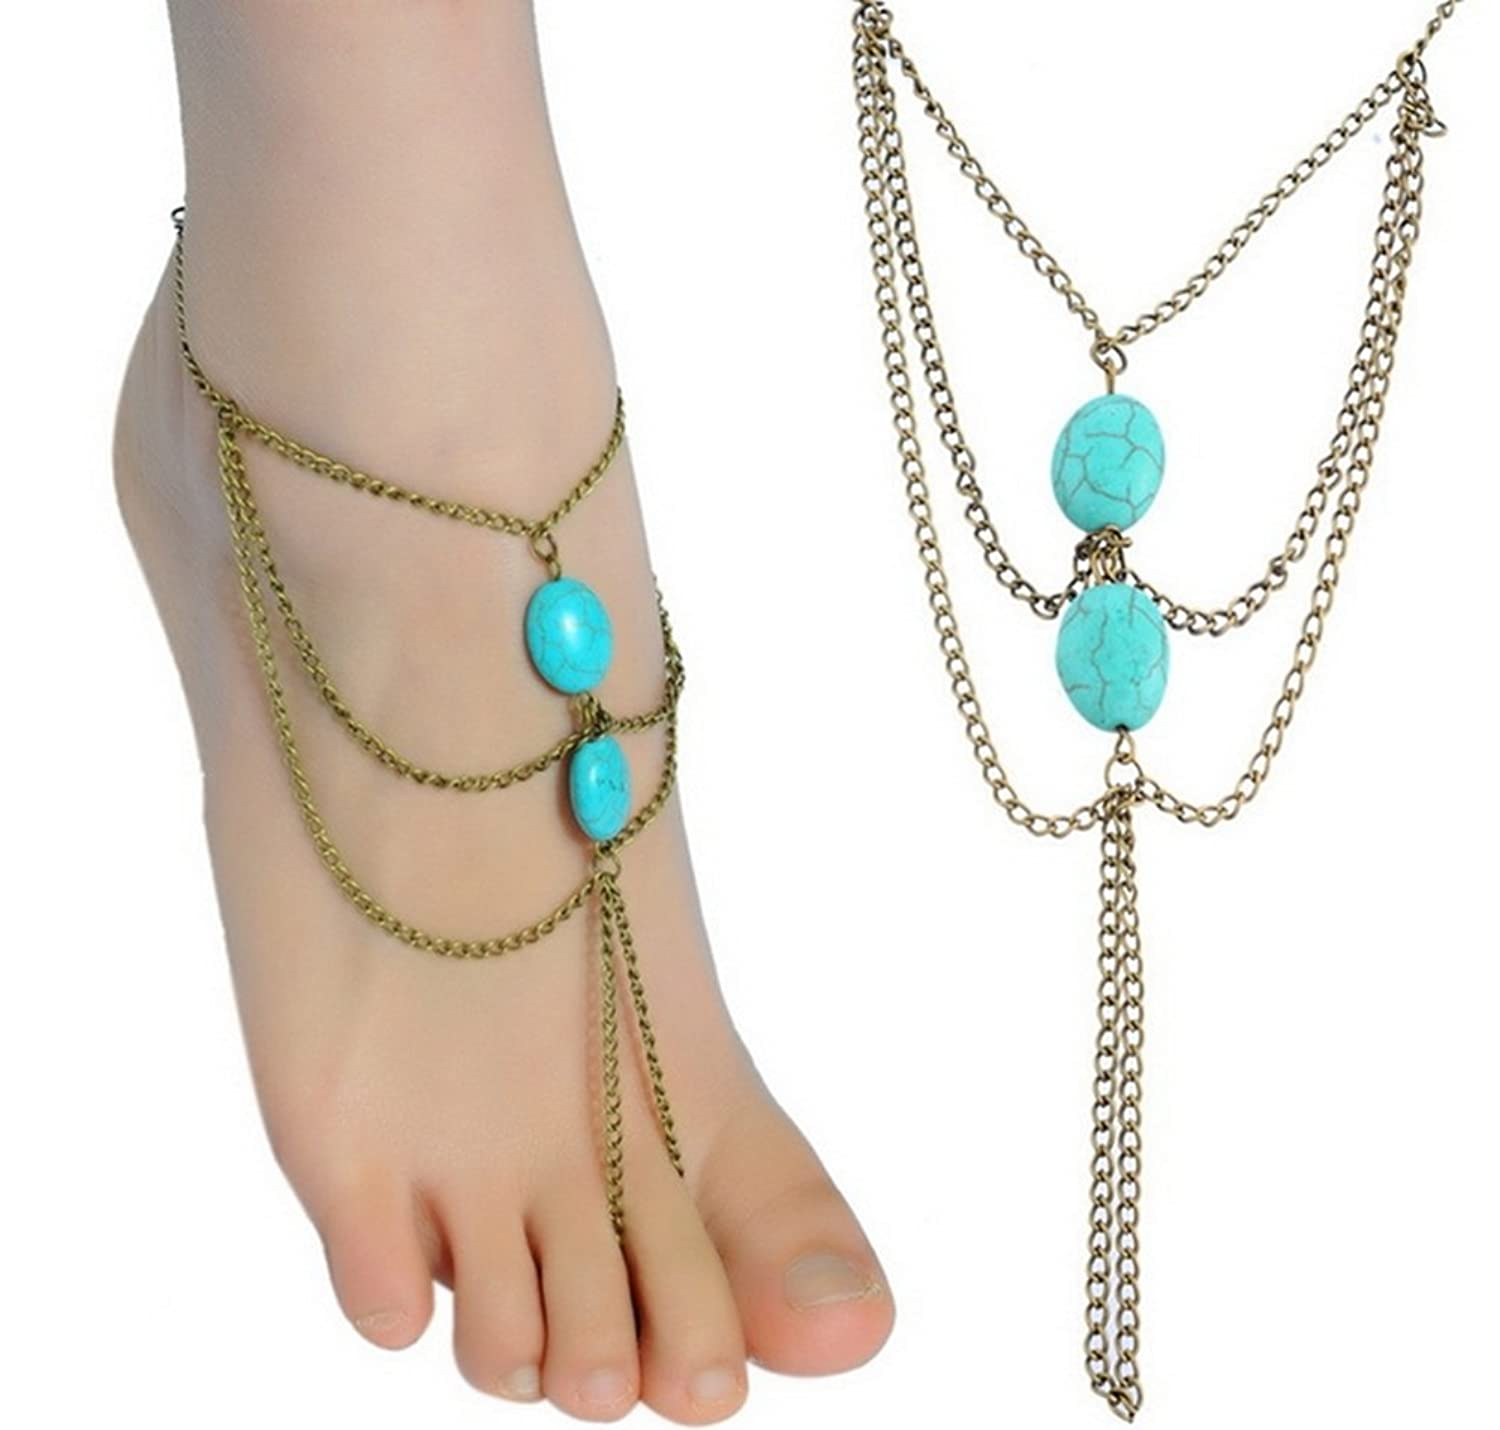 JY Jewelry Bronze Multilayer Chain Tassel Link Toes with turquoise Anklet